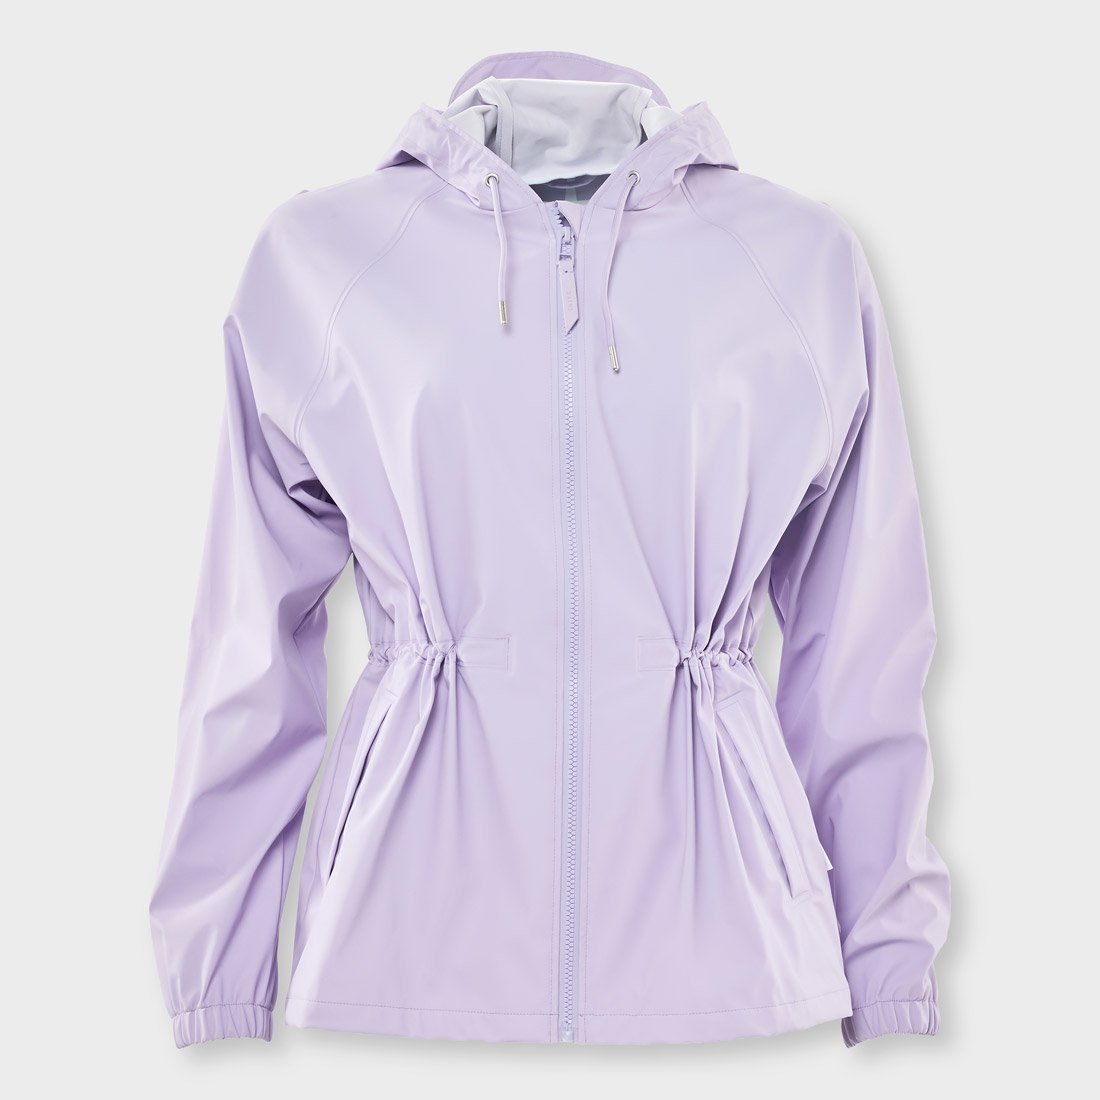 RAINS Women's Jacket Lavender